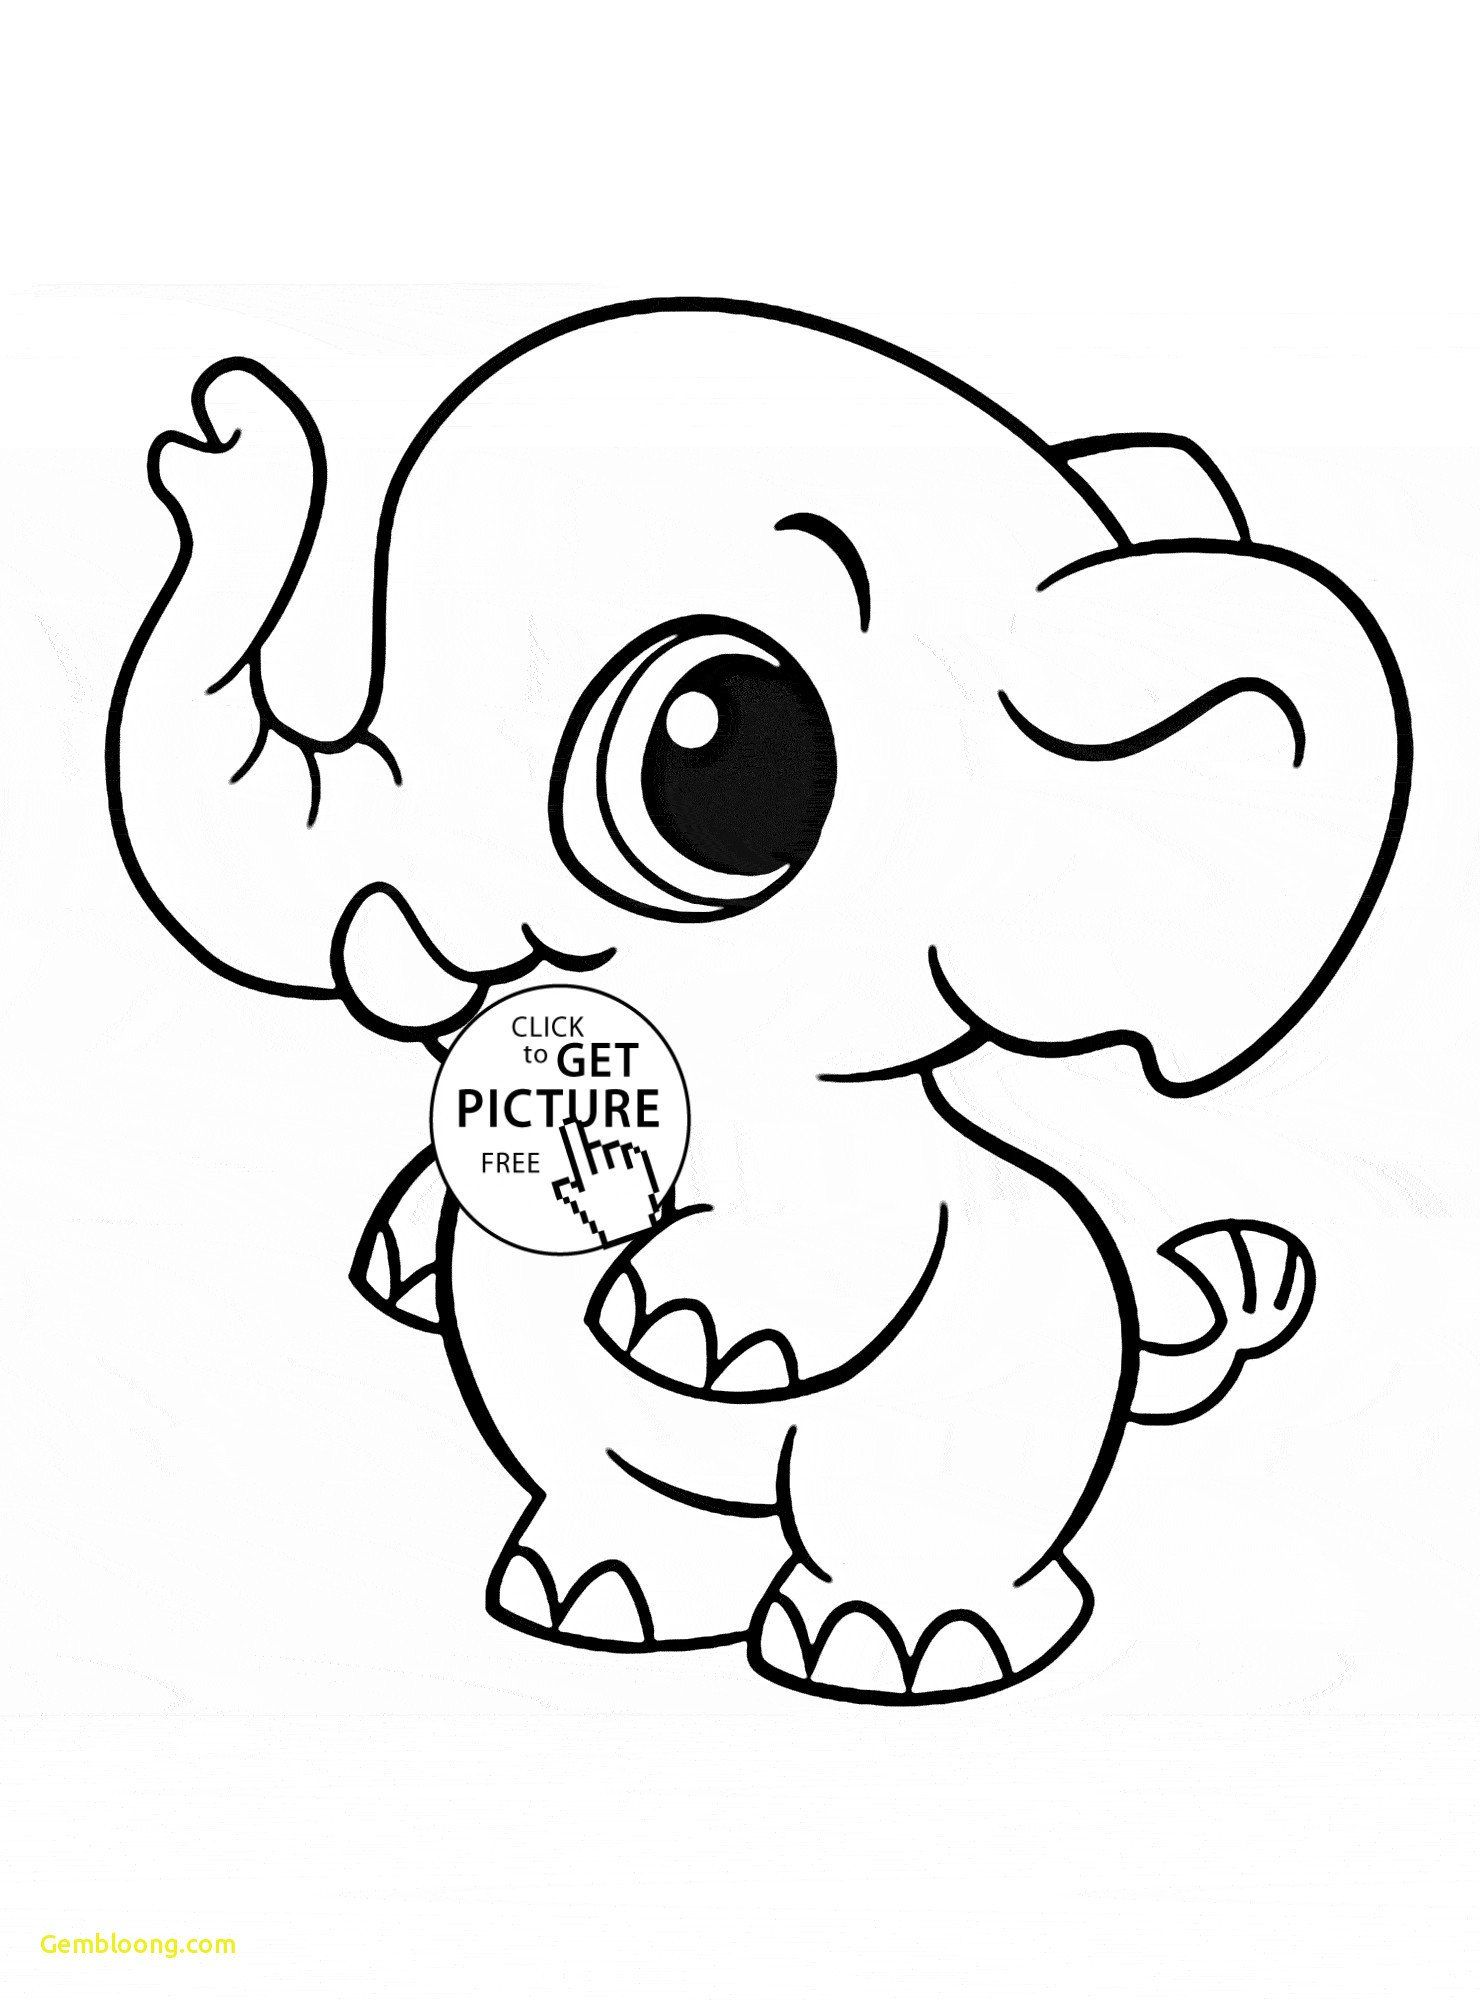 Coloring Pages Of Cute Animals Coloring Pages Cute Baby Animal Coloring Pages Luxury Zoo Animal Coloring Pages Unicorn Coloring Pages Elephant Coloring Page